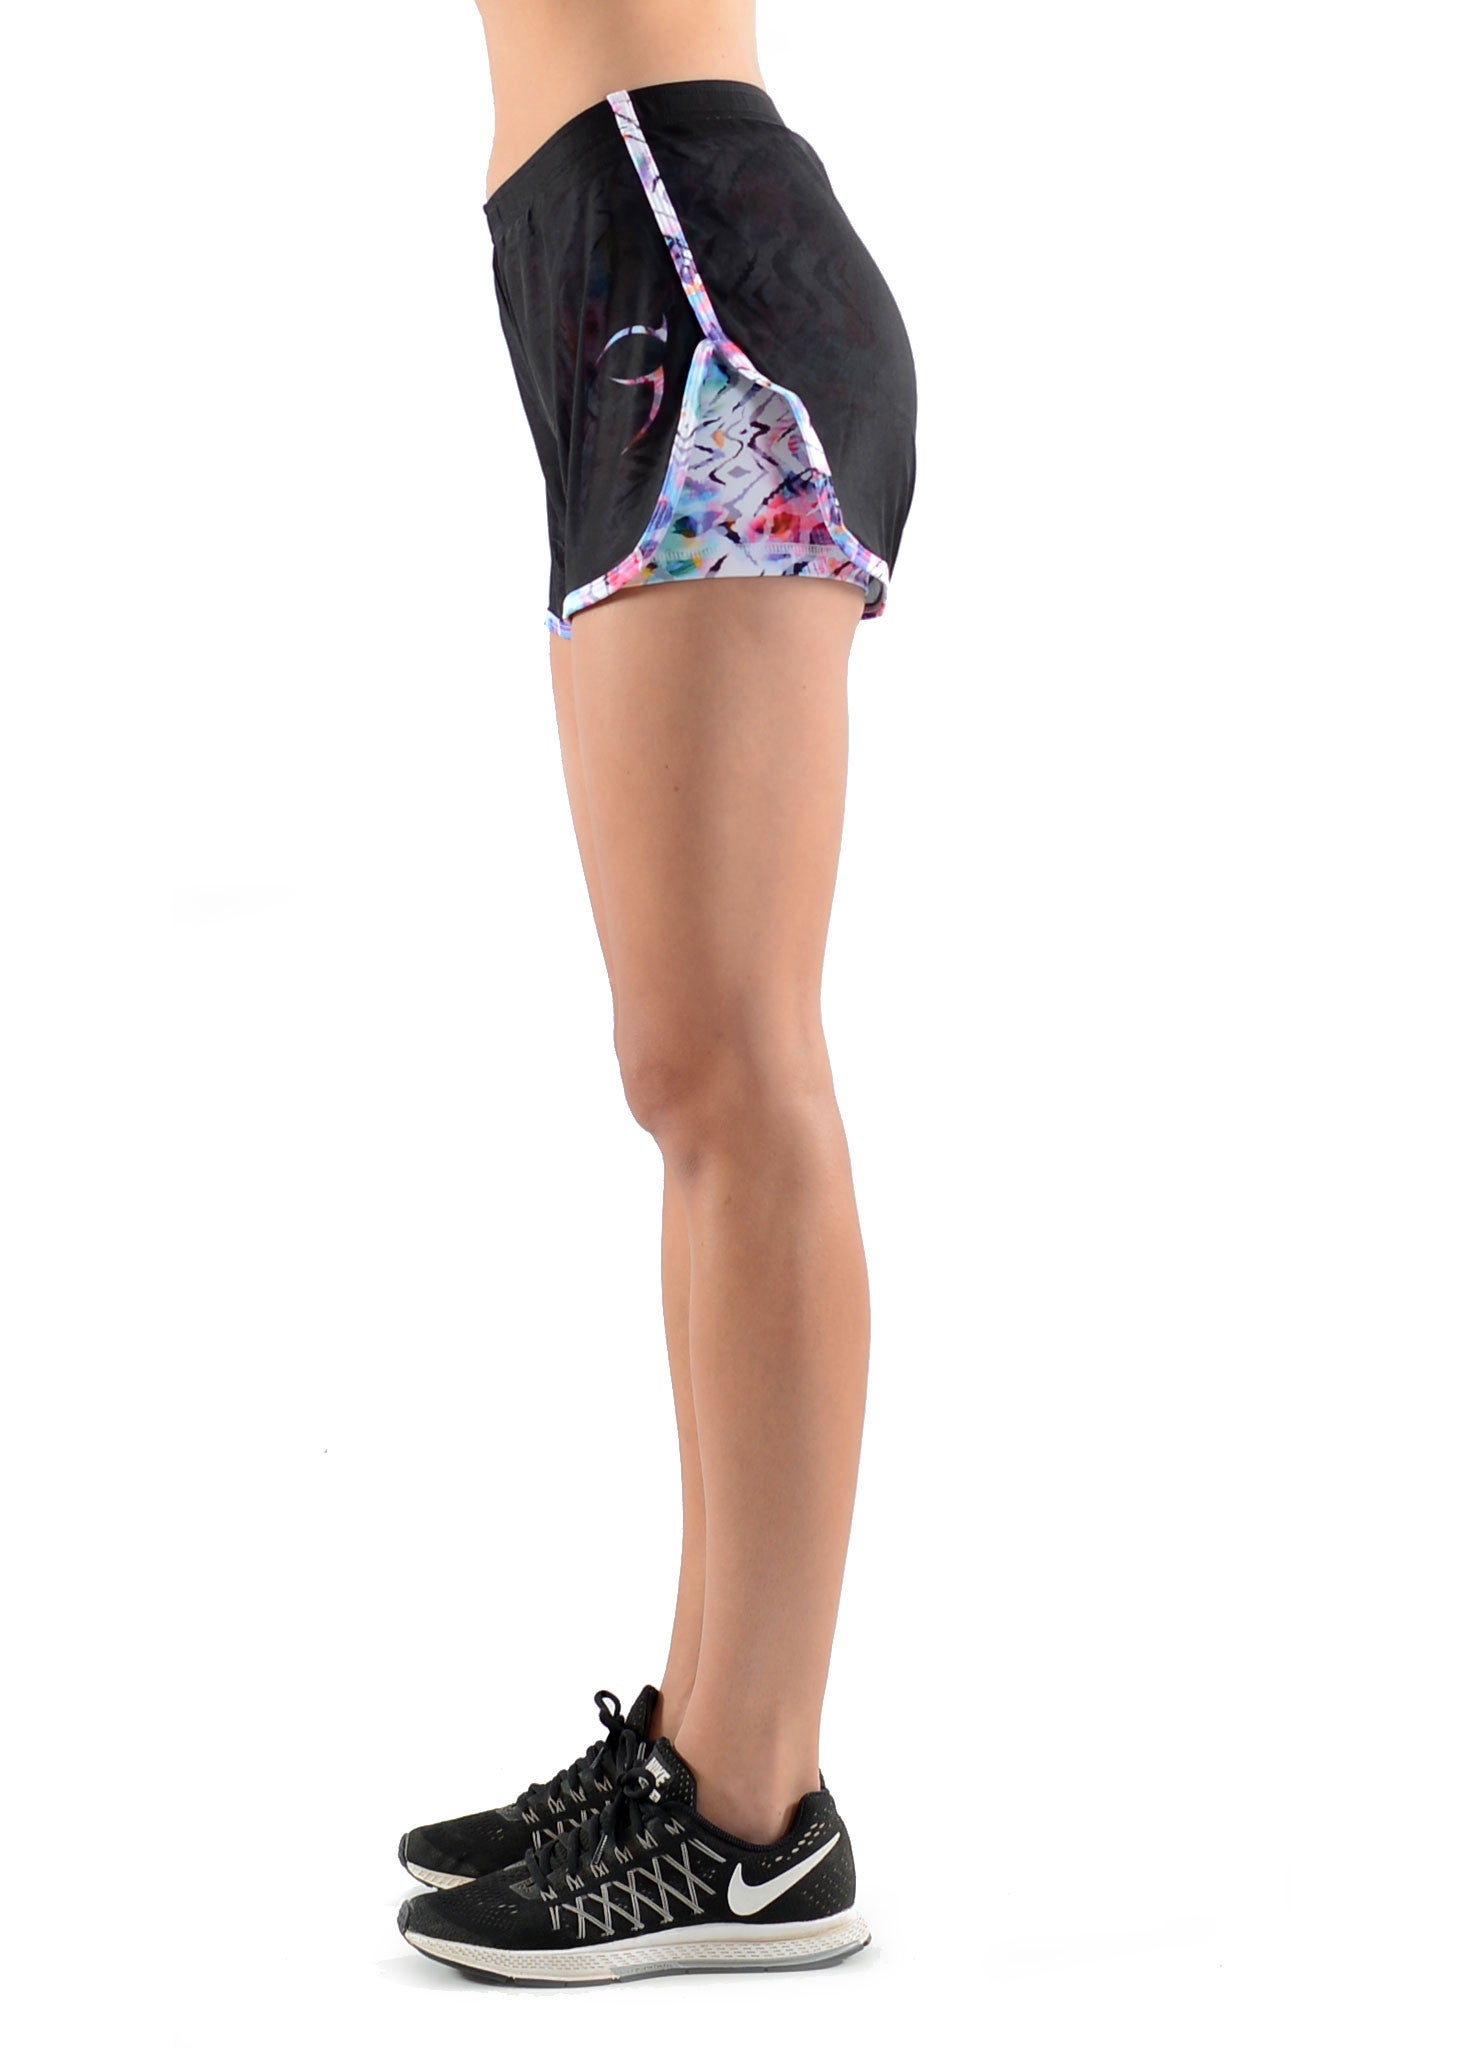 2-In-1 Flex Run Shorts - Picasso Bloom